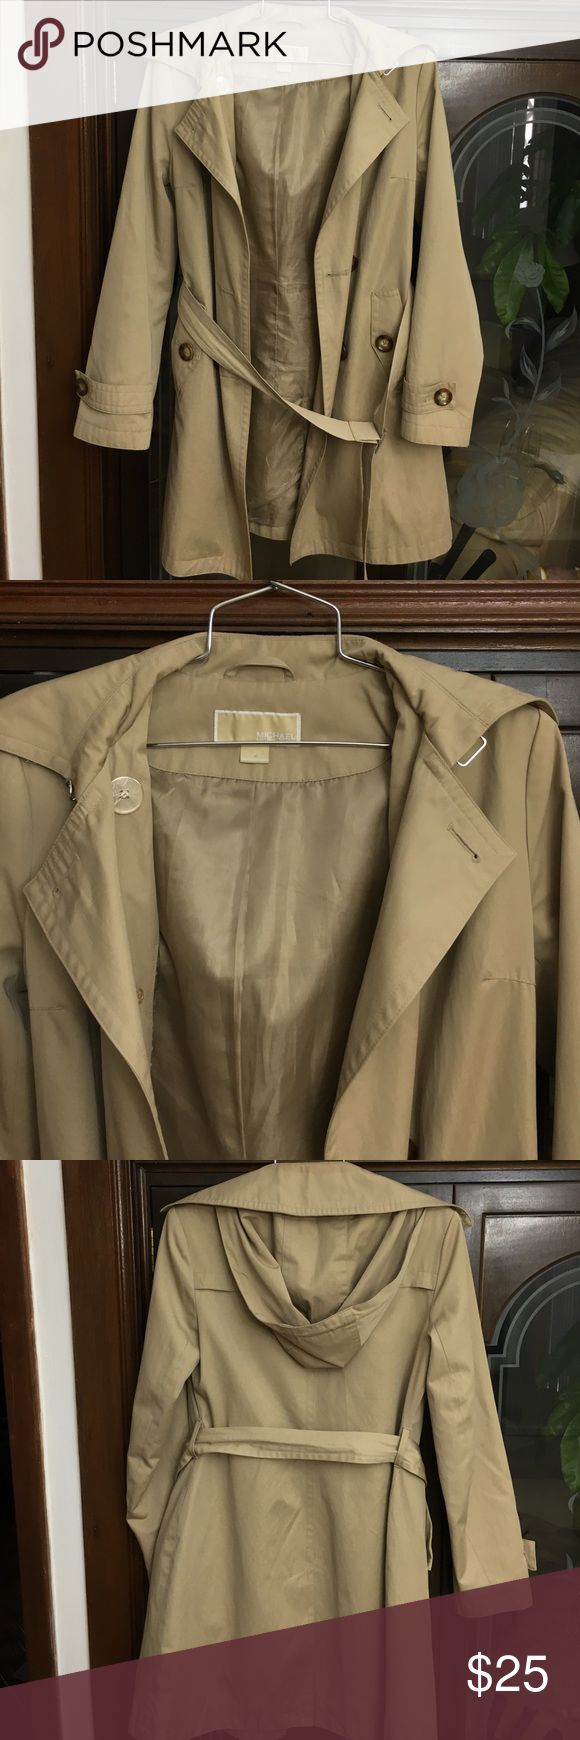 Michael by Michael Kors Trench Coat with Hood XS Pre-owned. Michael Kors beige trench coat with detachable hood and belt. Used multiple times. Fits XS and S. Some buttons and top of one pocket re-sewn (see pictures). Coffee stain on front of left side (see picture). Sold as is. MICHAEL Michael Kors Jackets & Coats Trench Coats